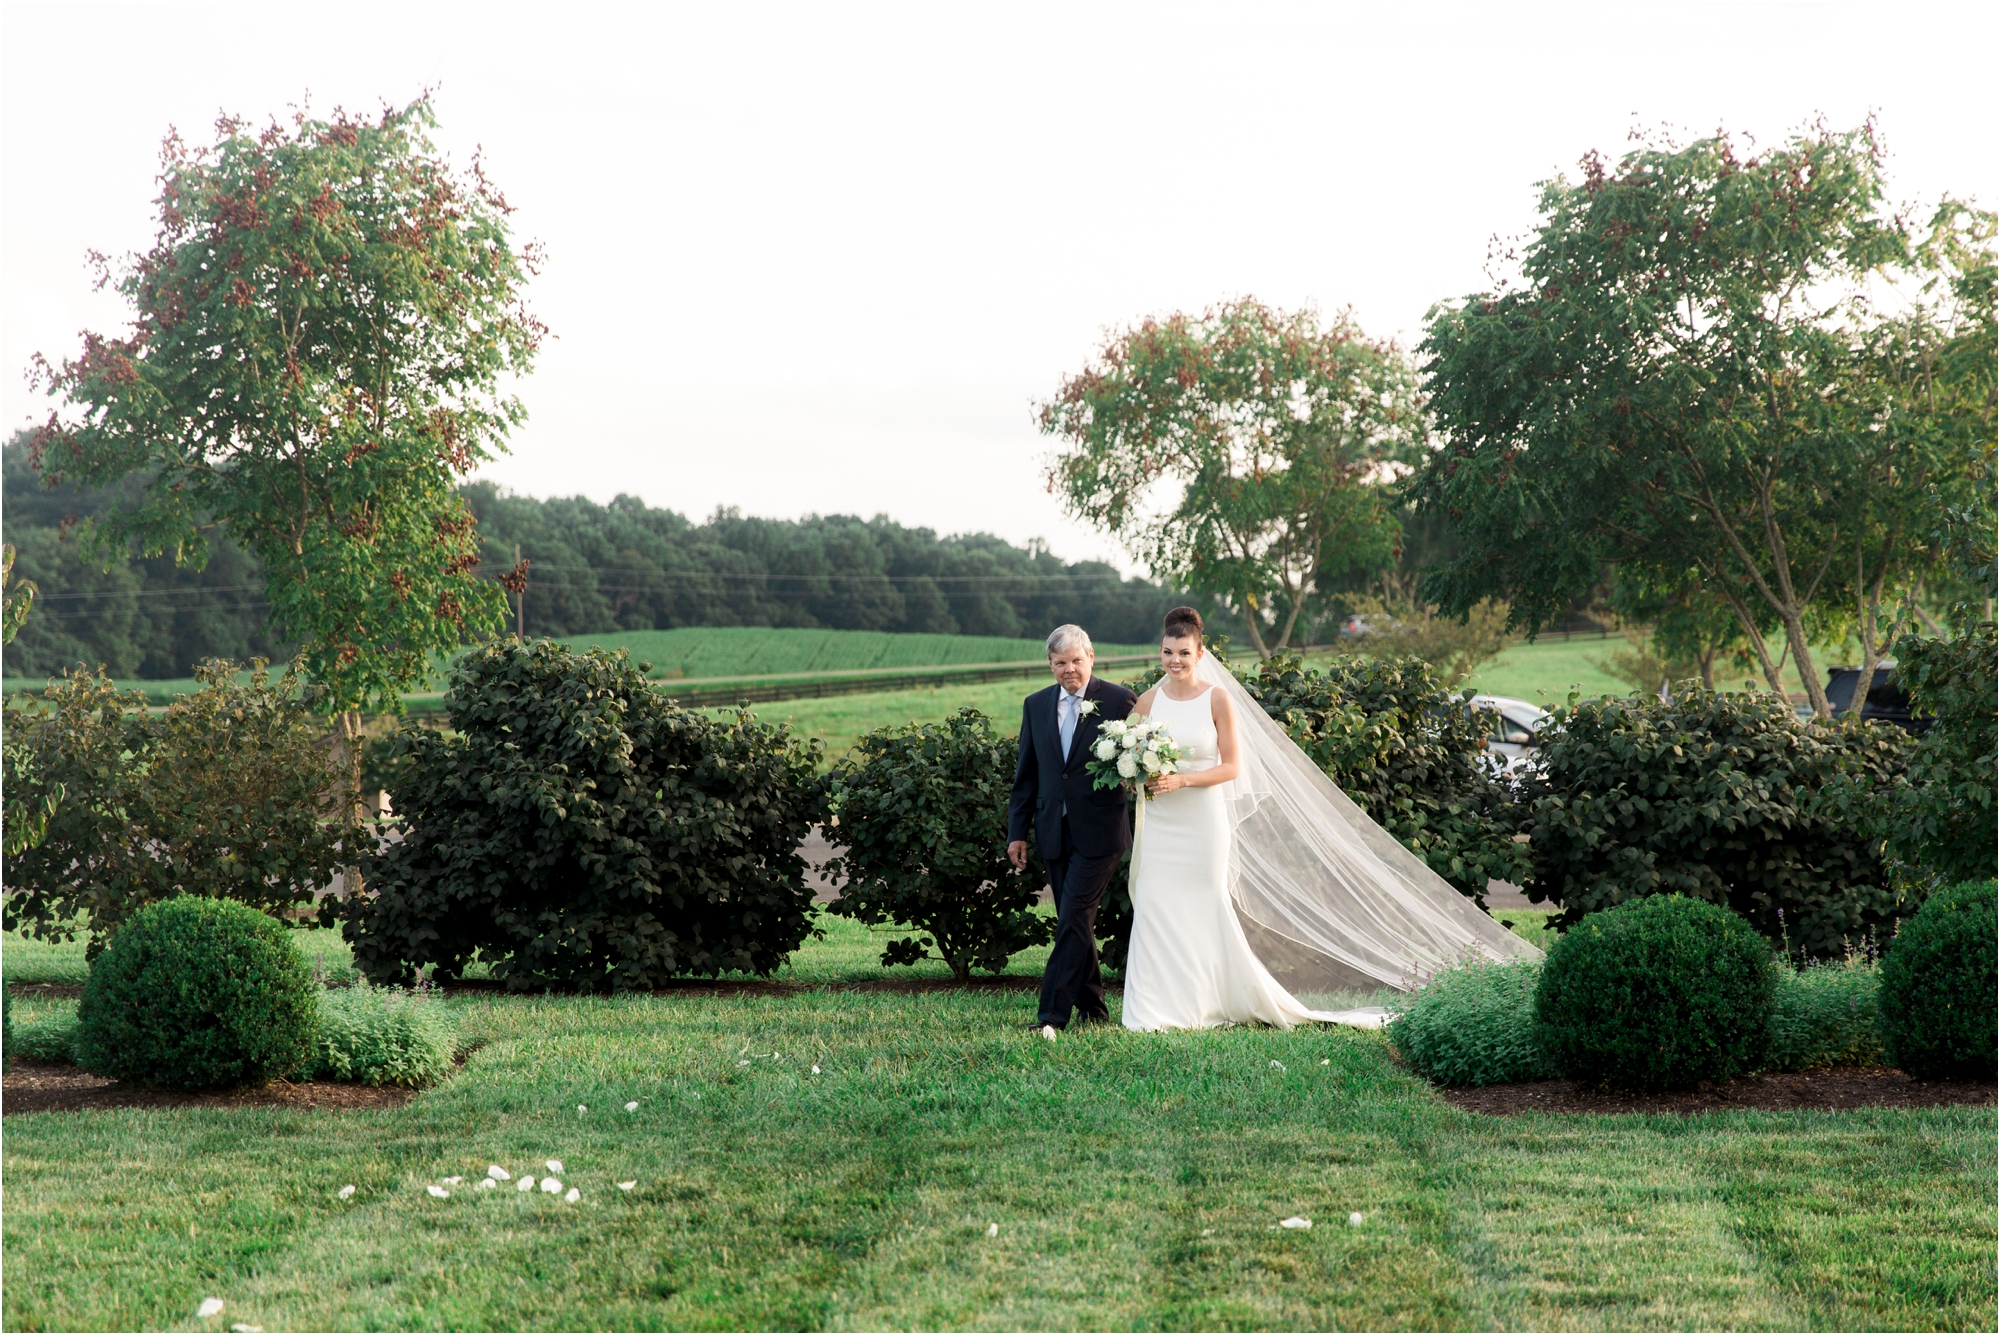 michelle-george-early-mountain-vineyard-charlottesville-virginia-wedding-photos_0021.jpg